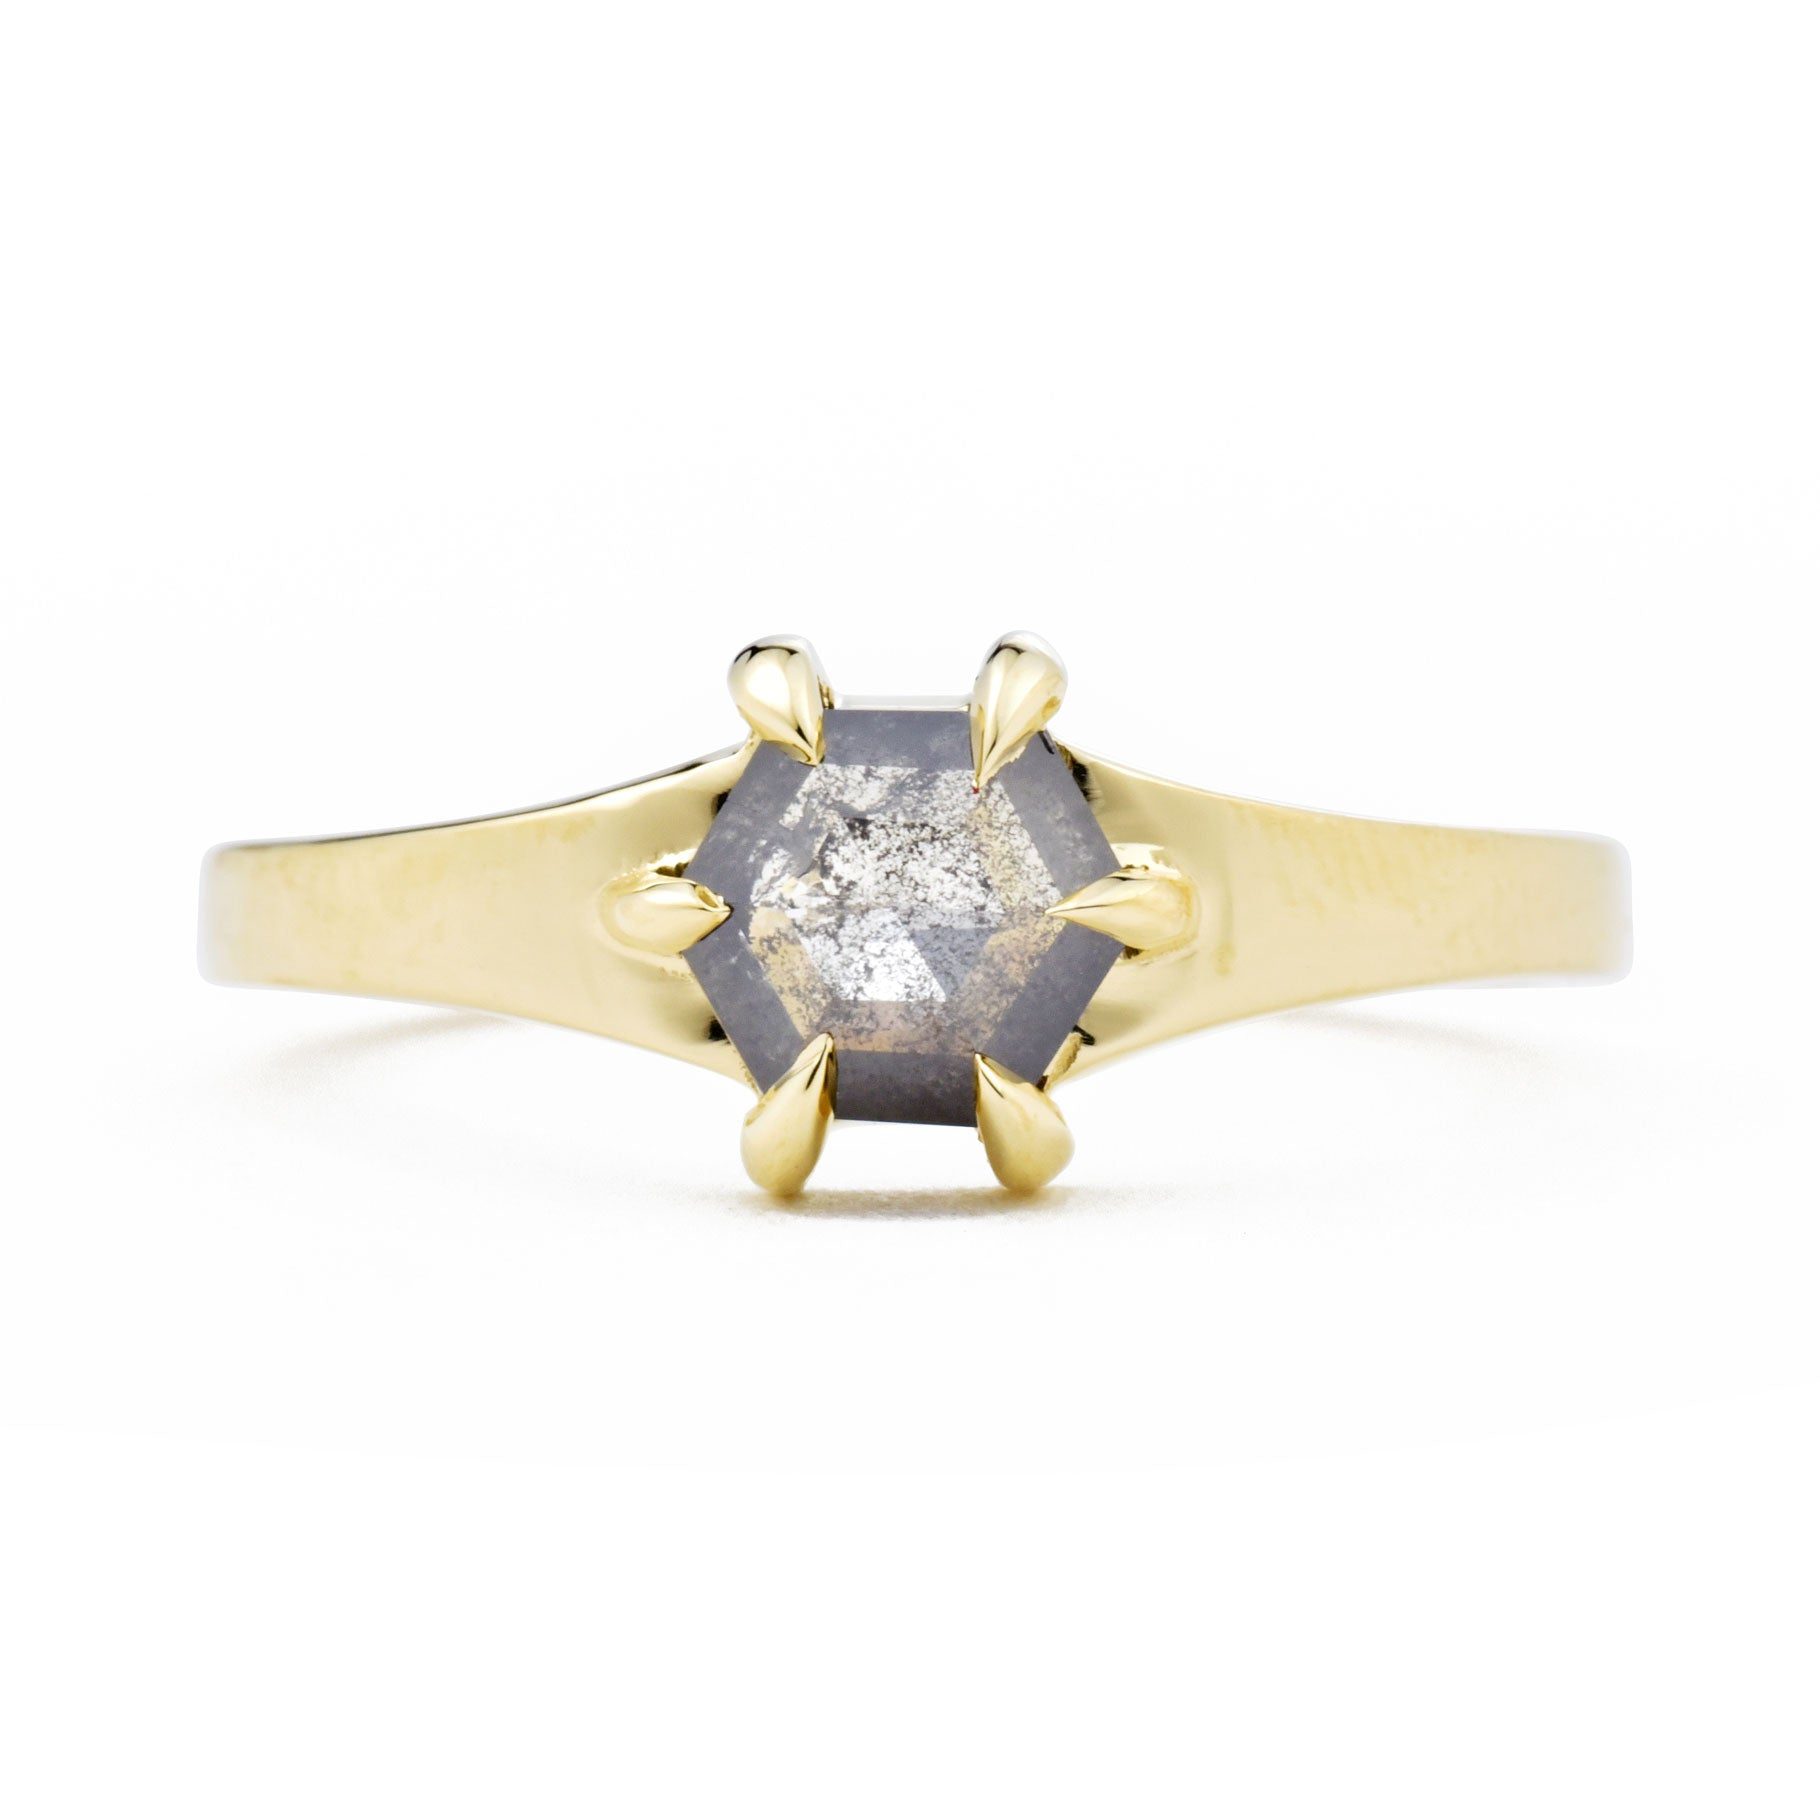 Product shot of the Astrid East-West S&P Hexagon Diamond Engagement Ring